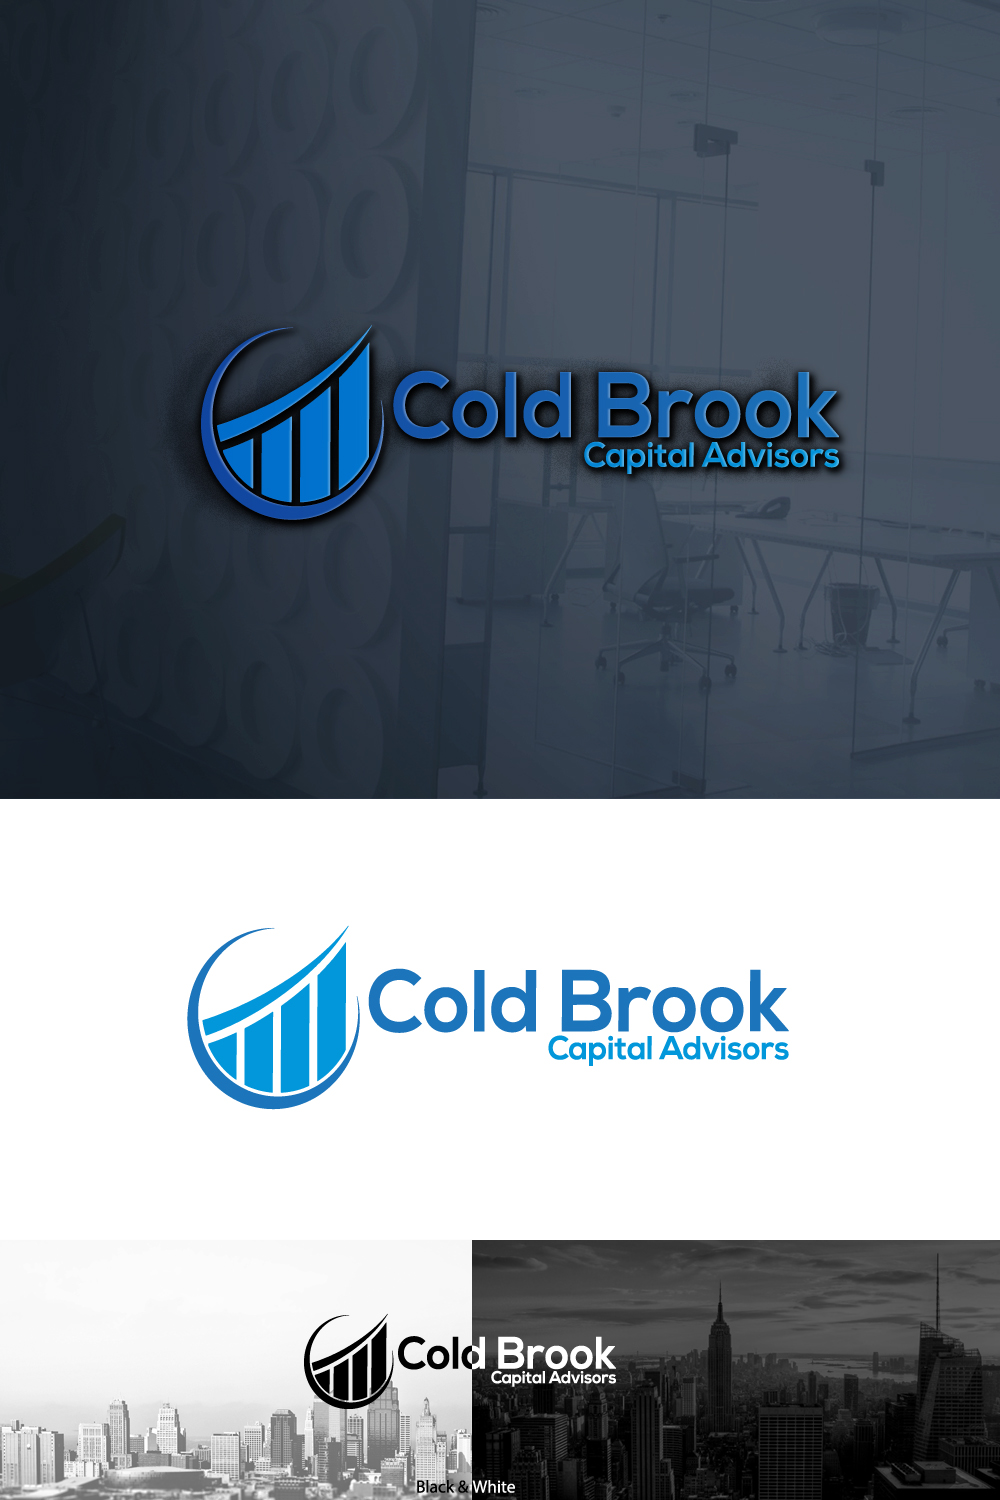 Serious, Professional Logo Design for Cold Brook Capital Advisors by